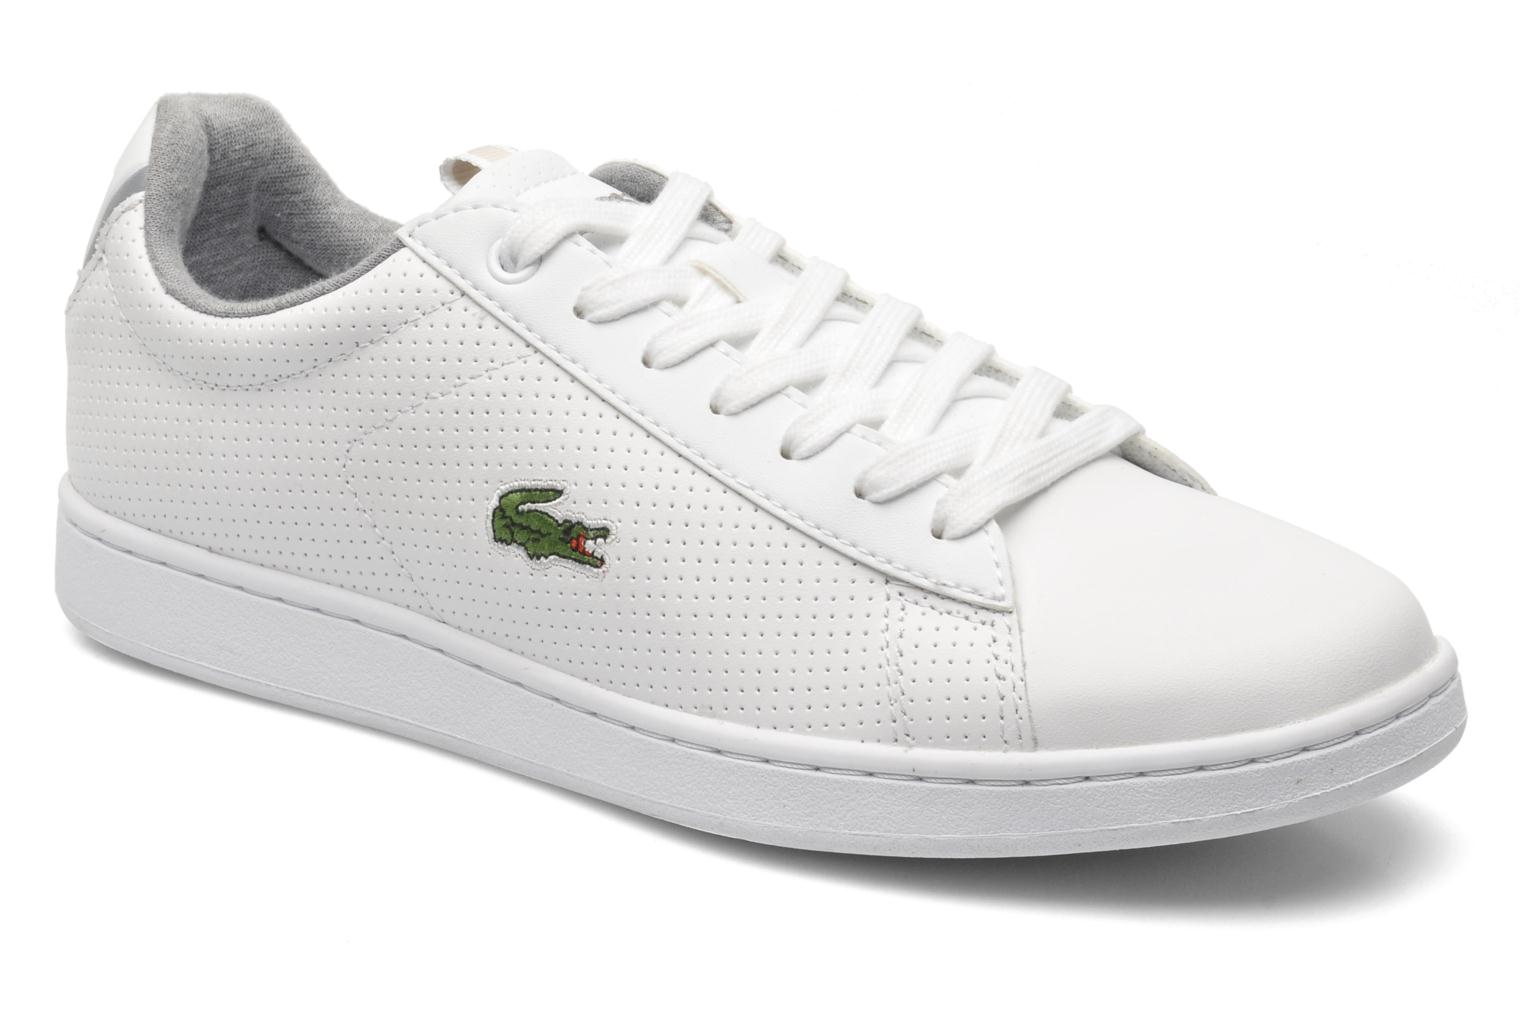 Carnaby Evo Cls by Lacoste